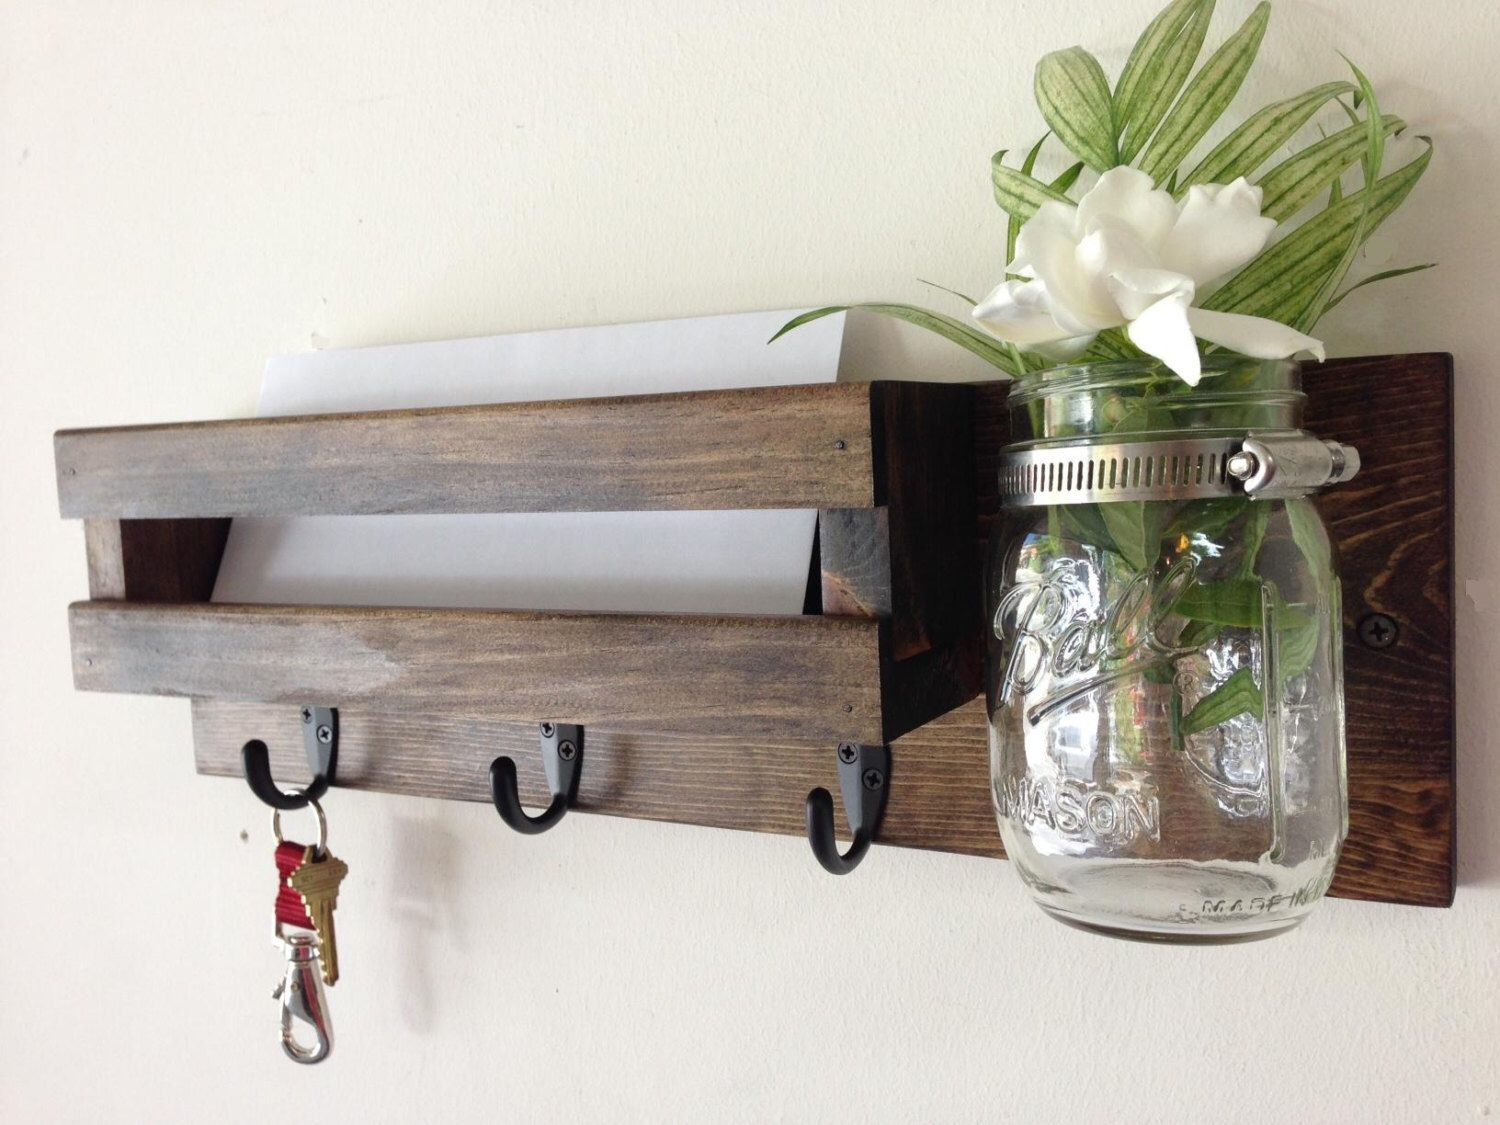 Rustic Mail Organizer Key Rack With Mason Jar Wall Sorter And Holder Entryway Vase Hooks